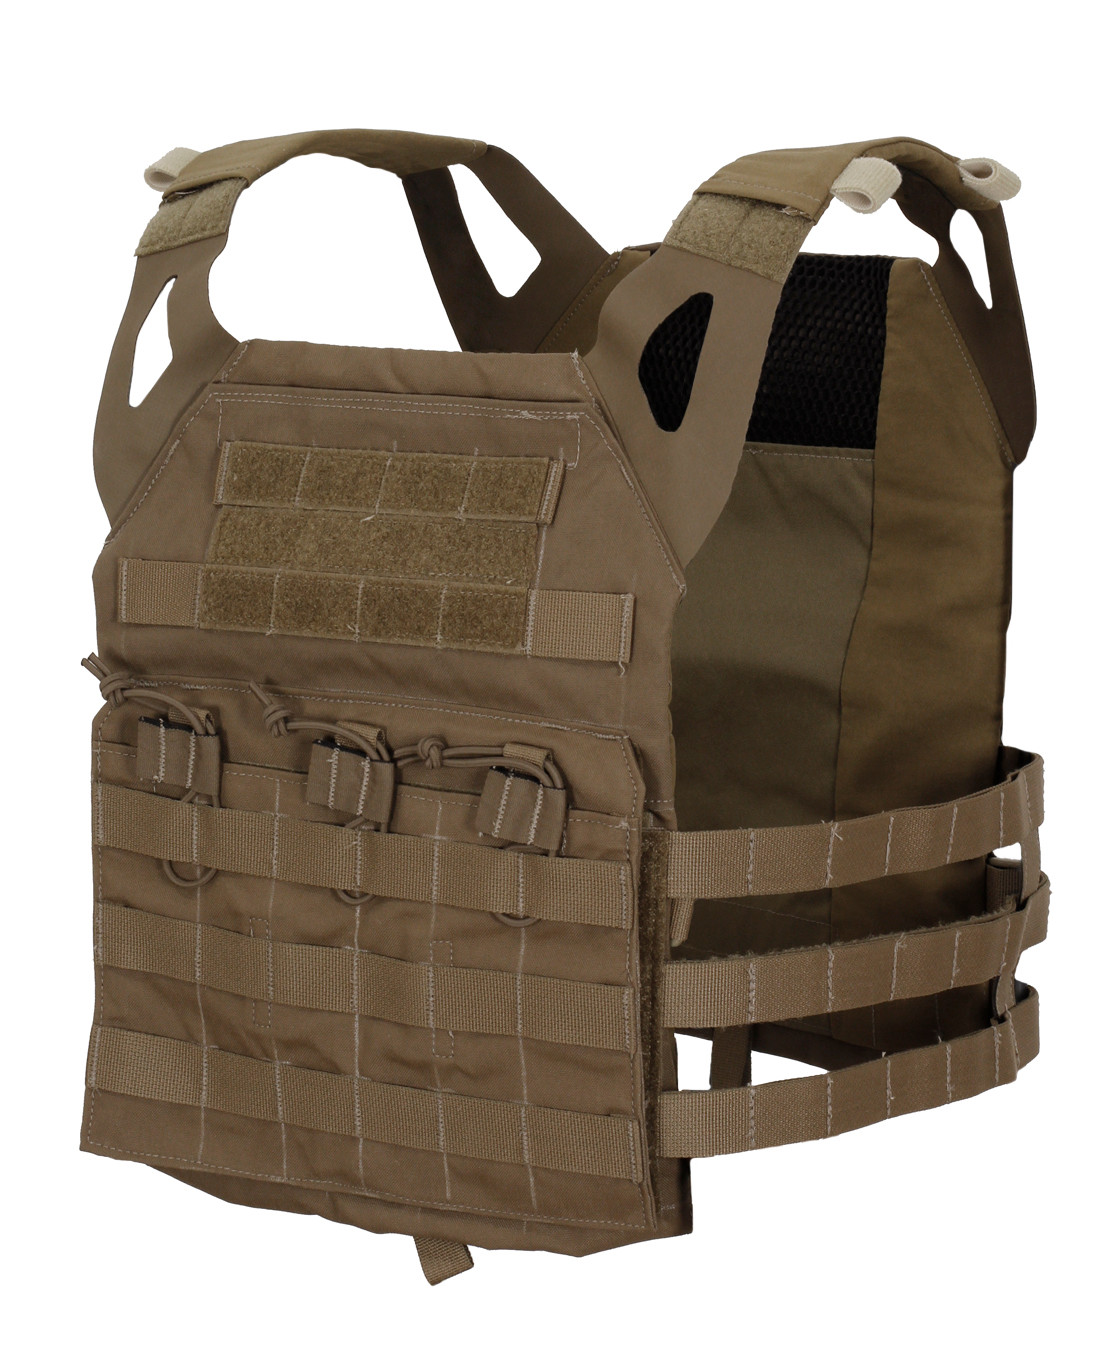 Coyote Tan XL Extra Large Crye Precision JPC Jumpable Plate Carrier Vest